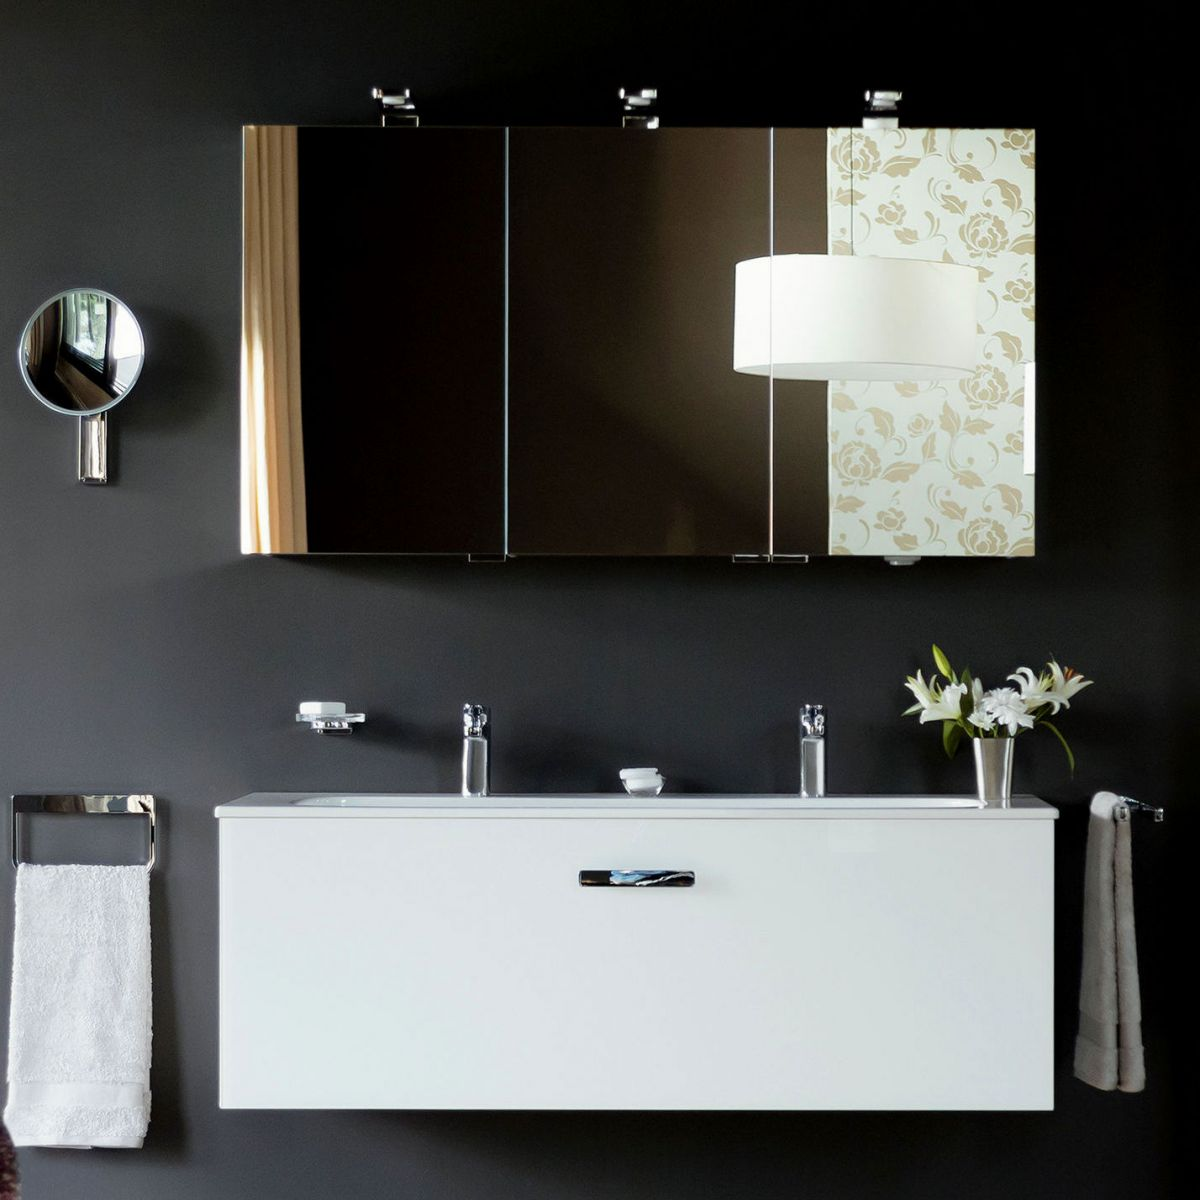 how to install bathroom mirror cabinet keuco royal universe illuminated mirror cabinet uk bathrooms 17032